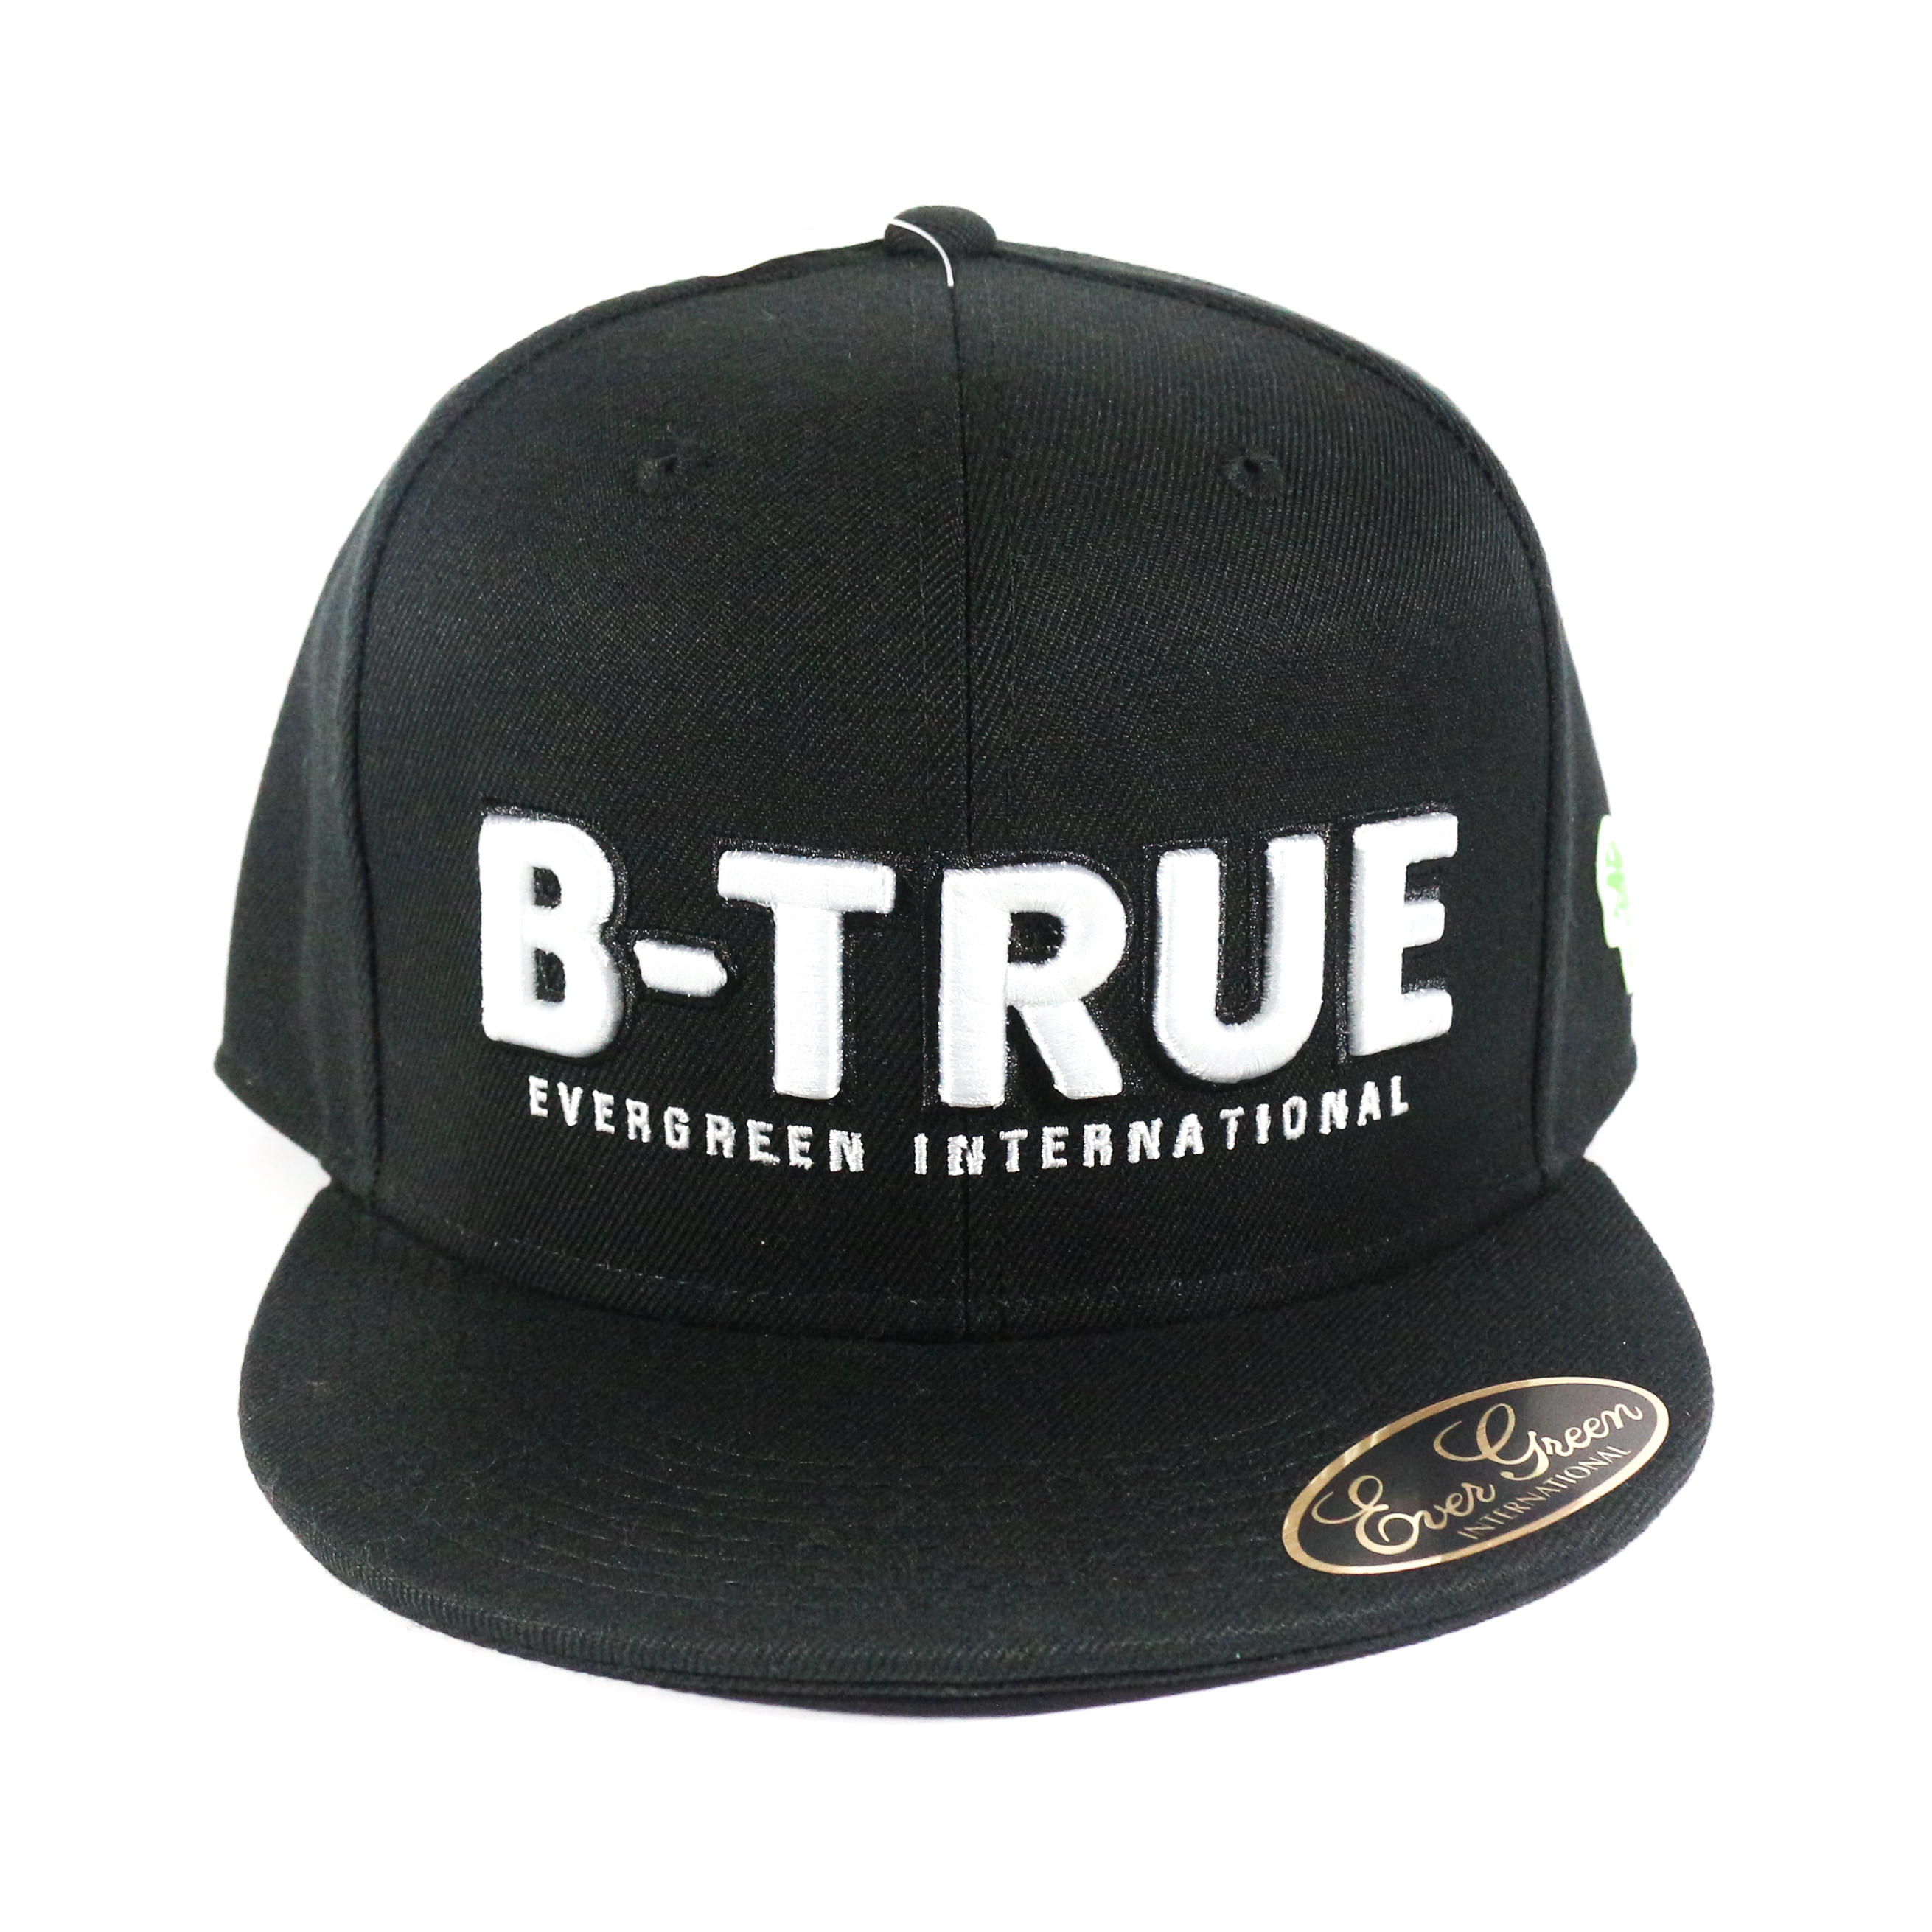 Evergreen Cap Flat Cap B-True Type A Japan Free Size Black (8467)